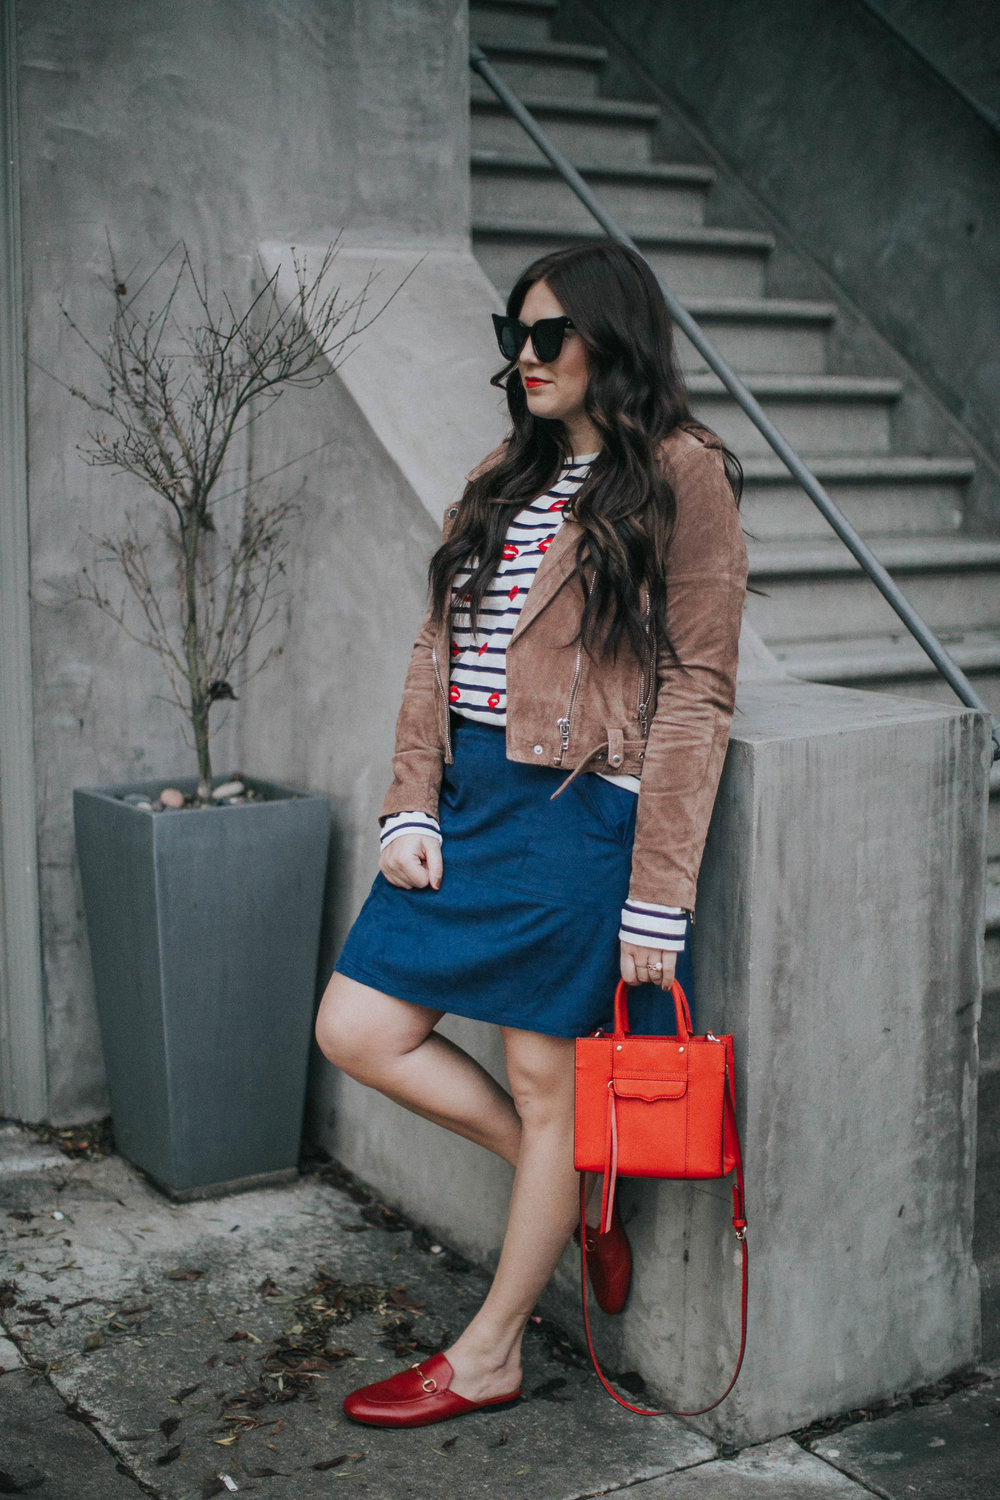 tee  JCrew  | jacket  Blank NYC  | skirt  Ruti  | loafers  Gucci  | bag  Rebecca Minkoff  | sunnies  Le Spec  | lipstick  MAC